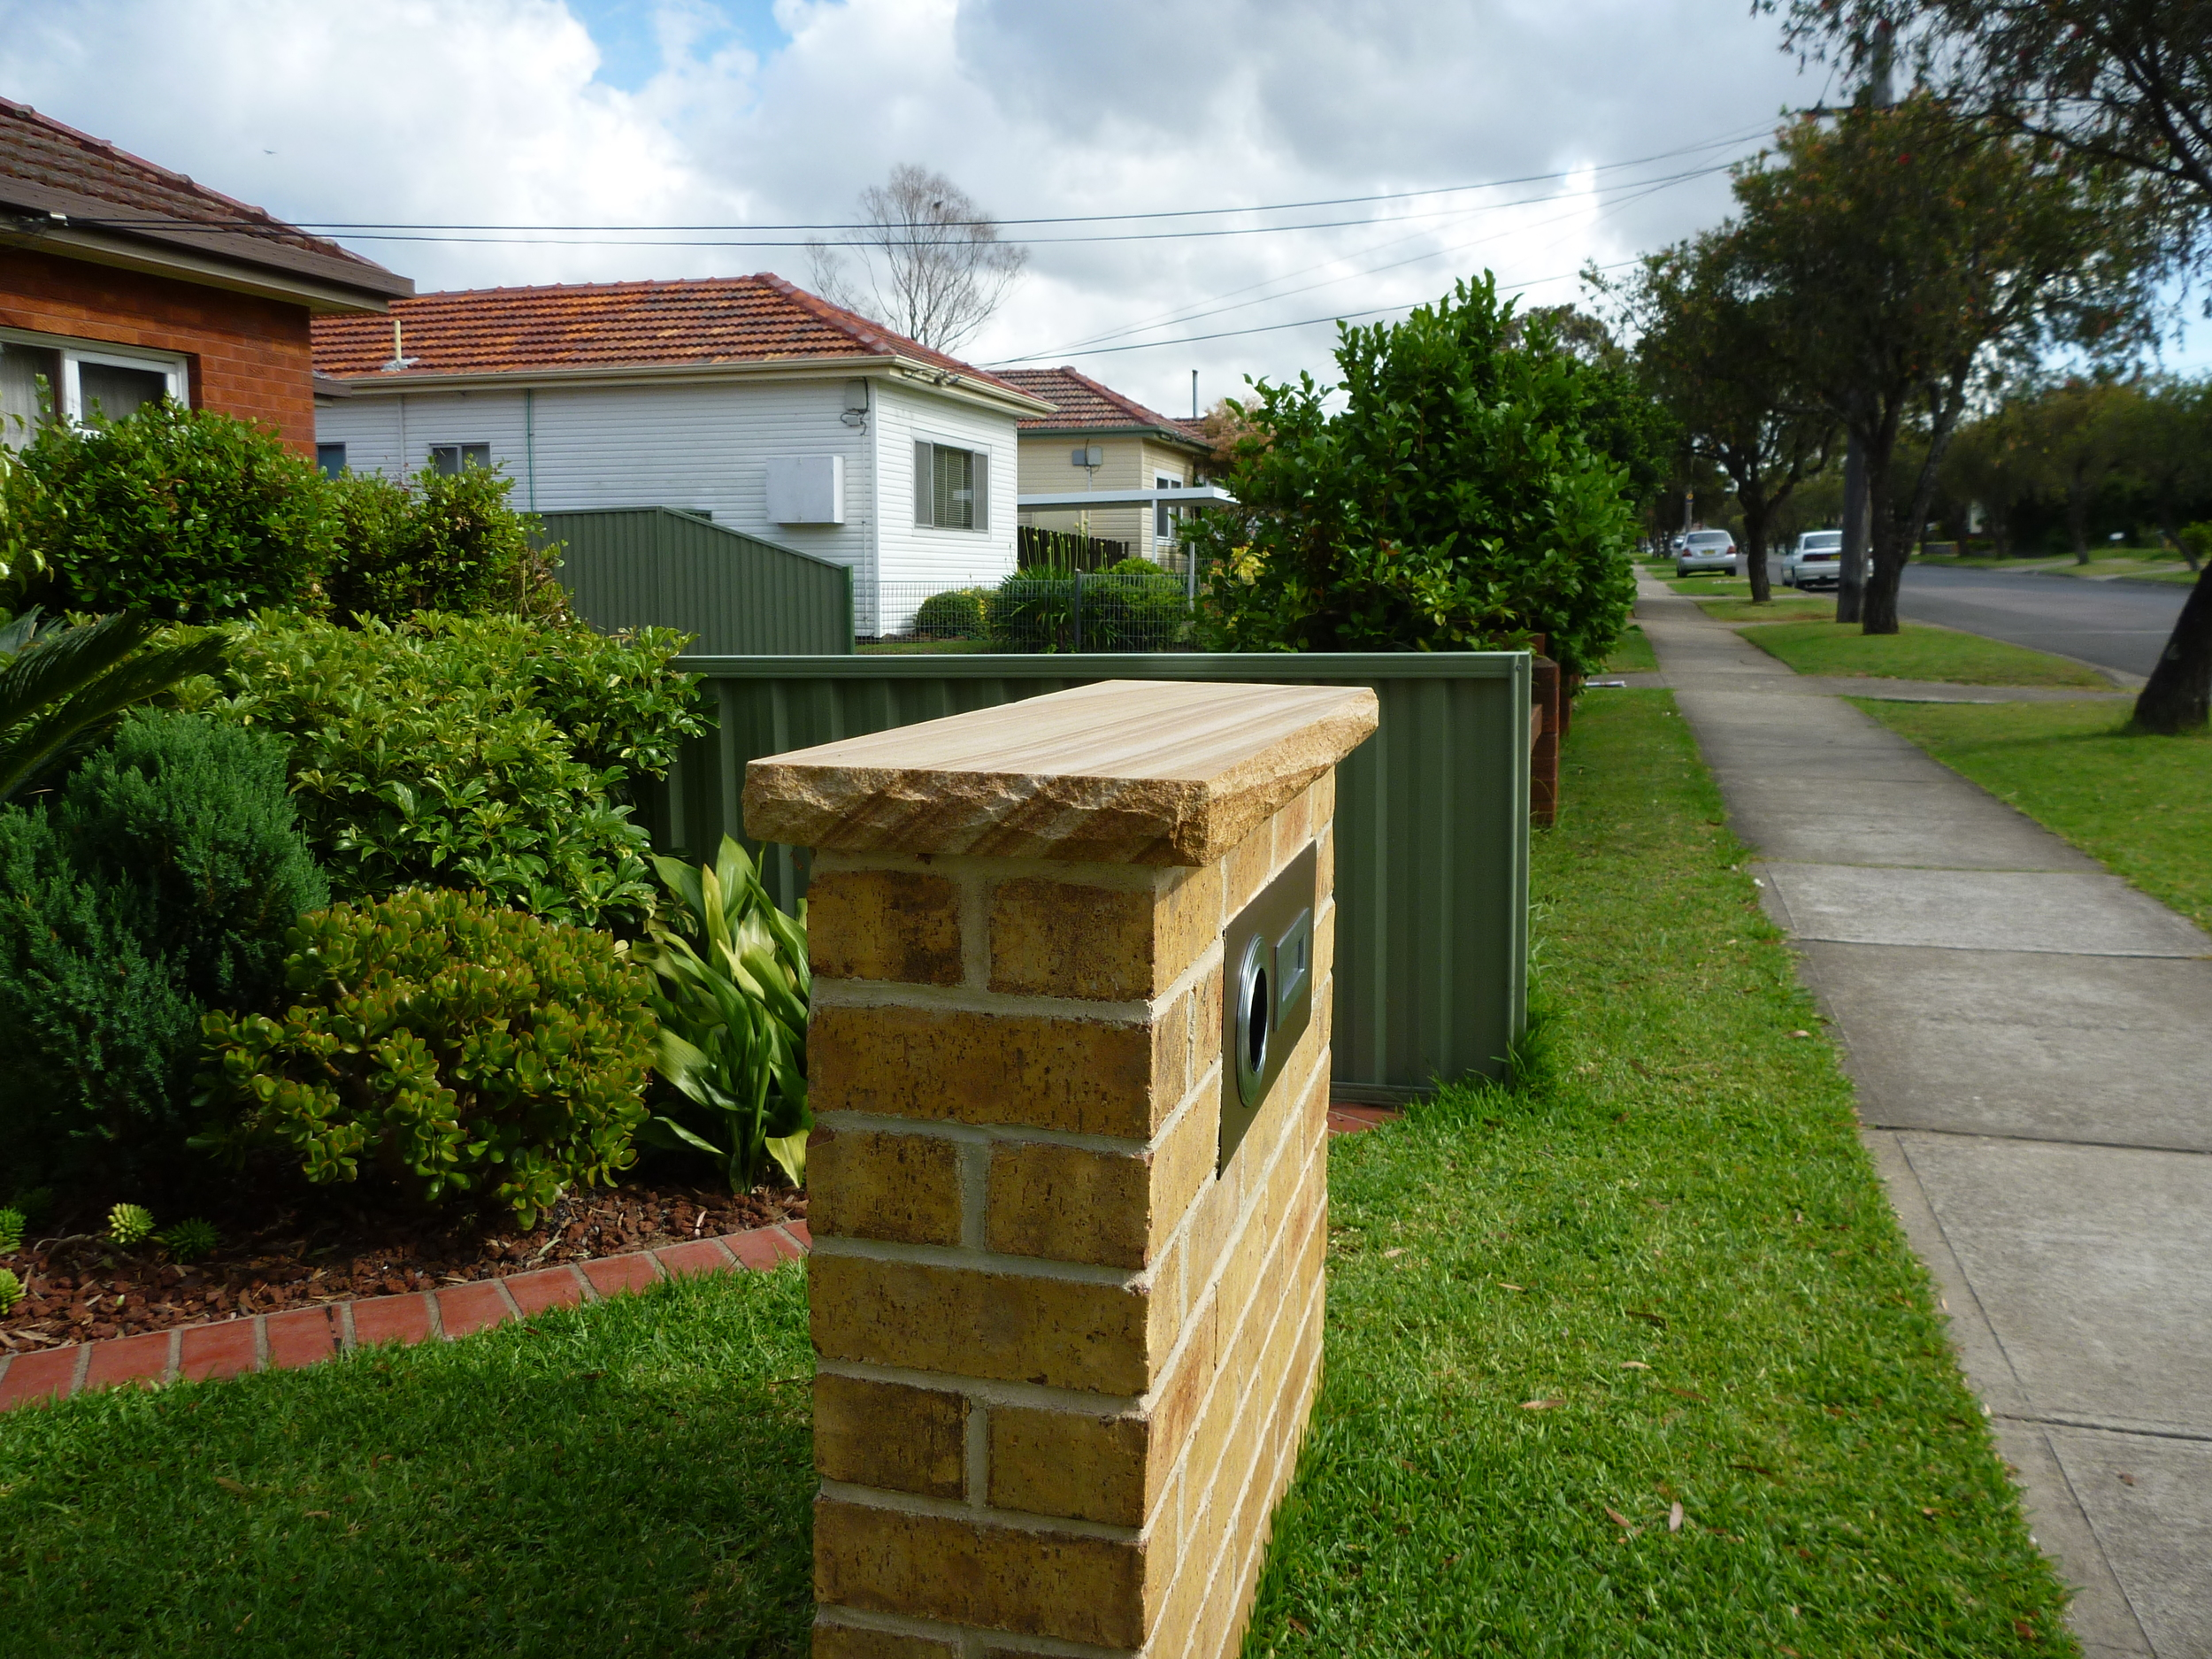 16. Australian capping 50mm thick for walls and piers (2)